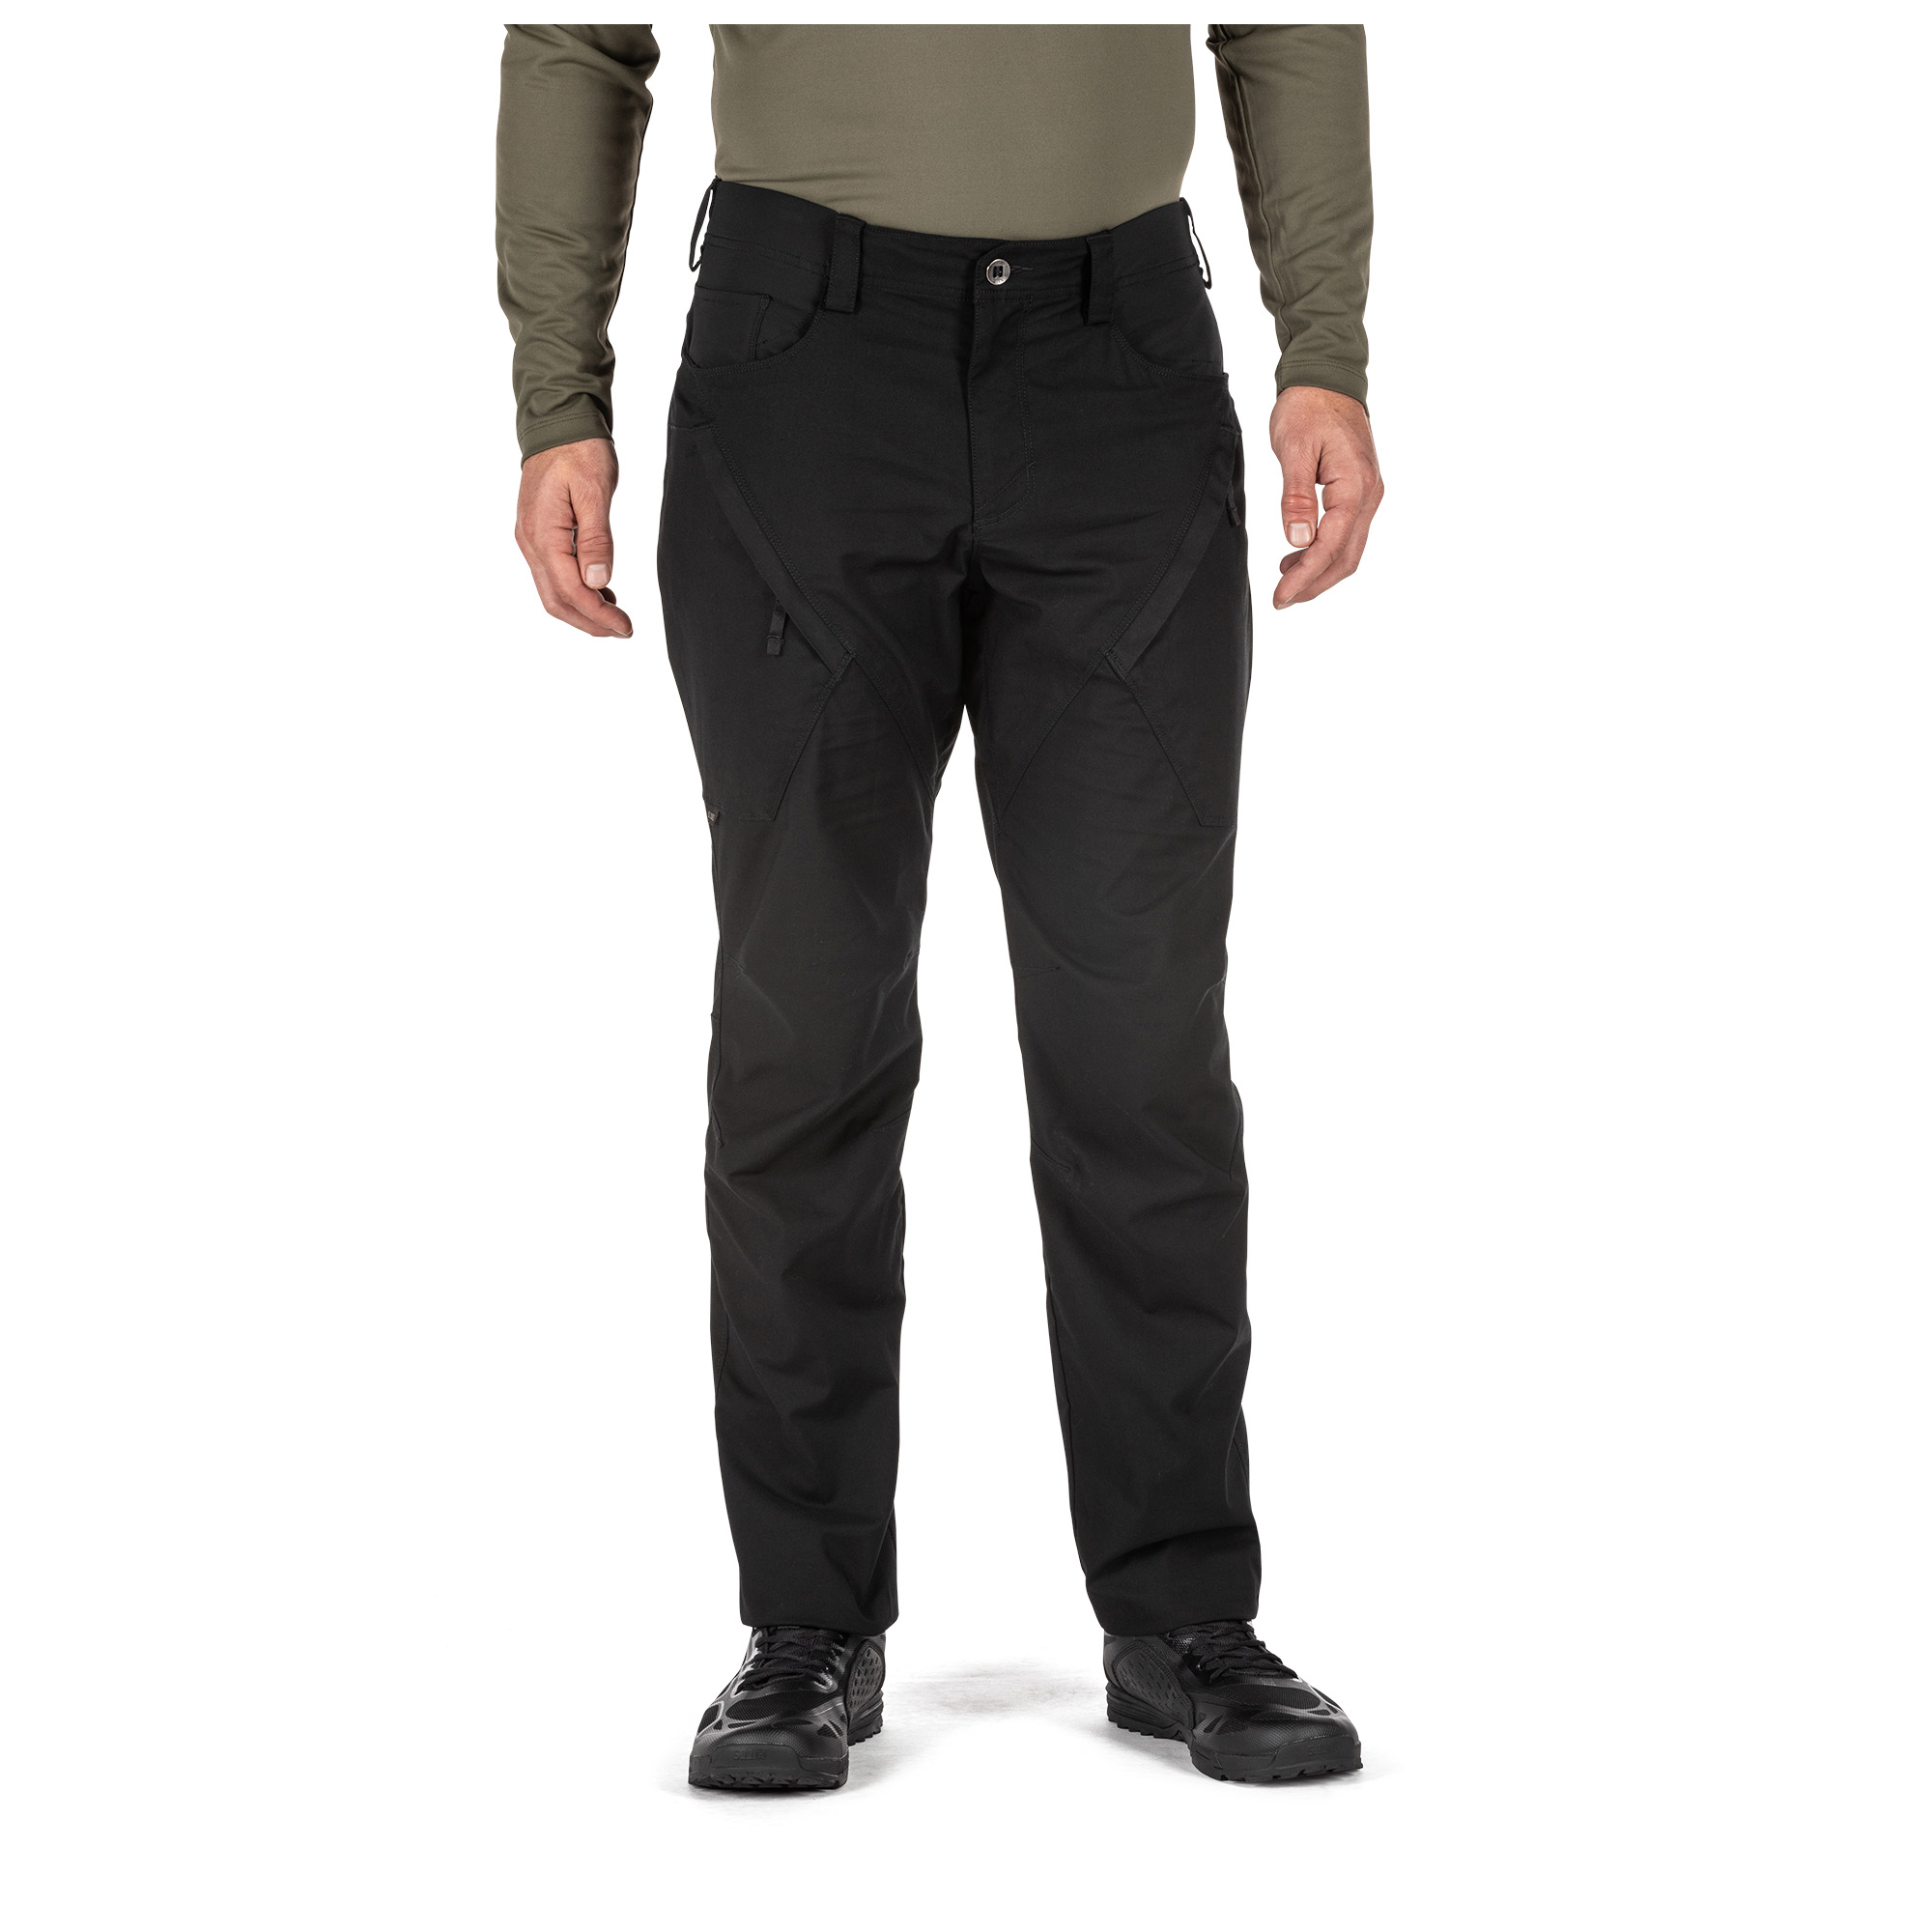 5.11 Tactical Men's Capital Pant, Size 33/34 (Cargo Pant) thumbnail